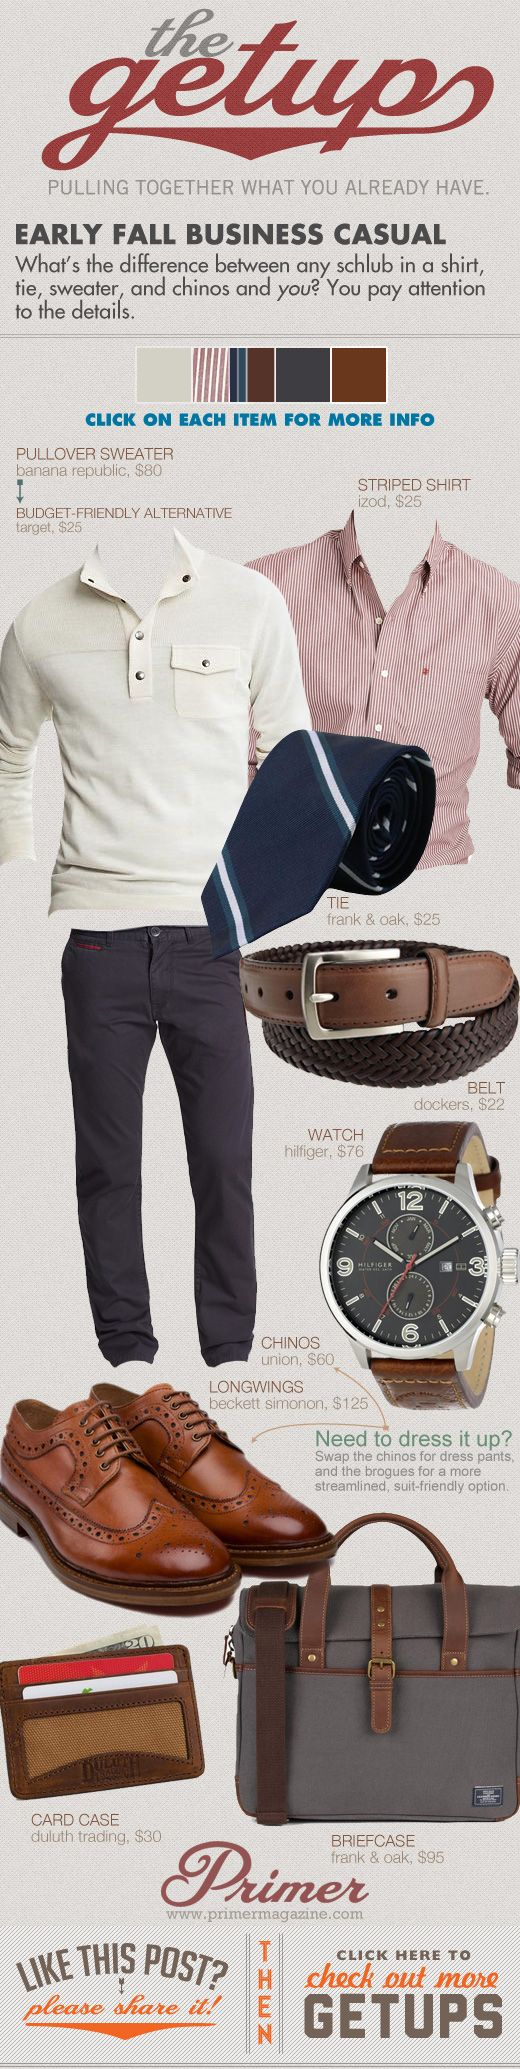 The Getup: Early Fall Business Casual | 'What's the difference between any schlub in a shirt, tie, sweater, and chinos and you? You pay attention to the details.'